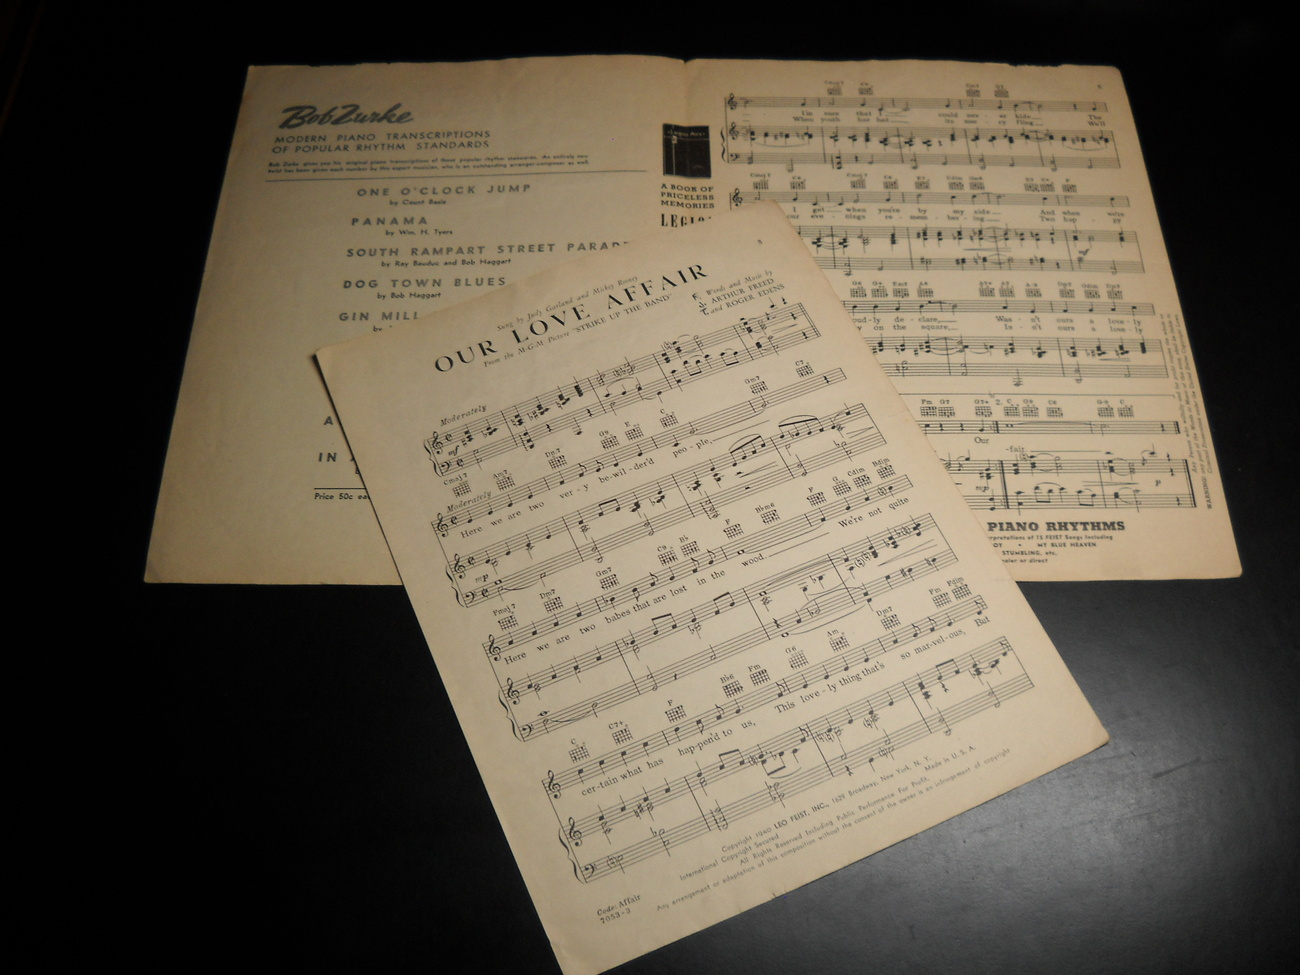 Sheet_music_our_love_affair_from_strike_up_the_band_judy_garland_mickey_rooney__01